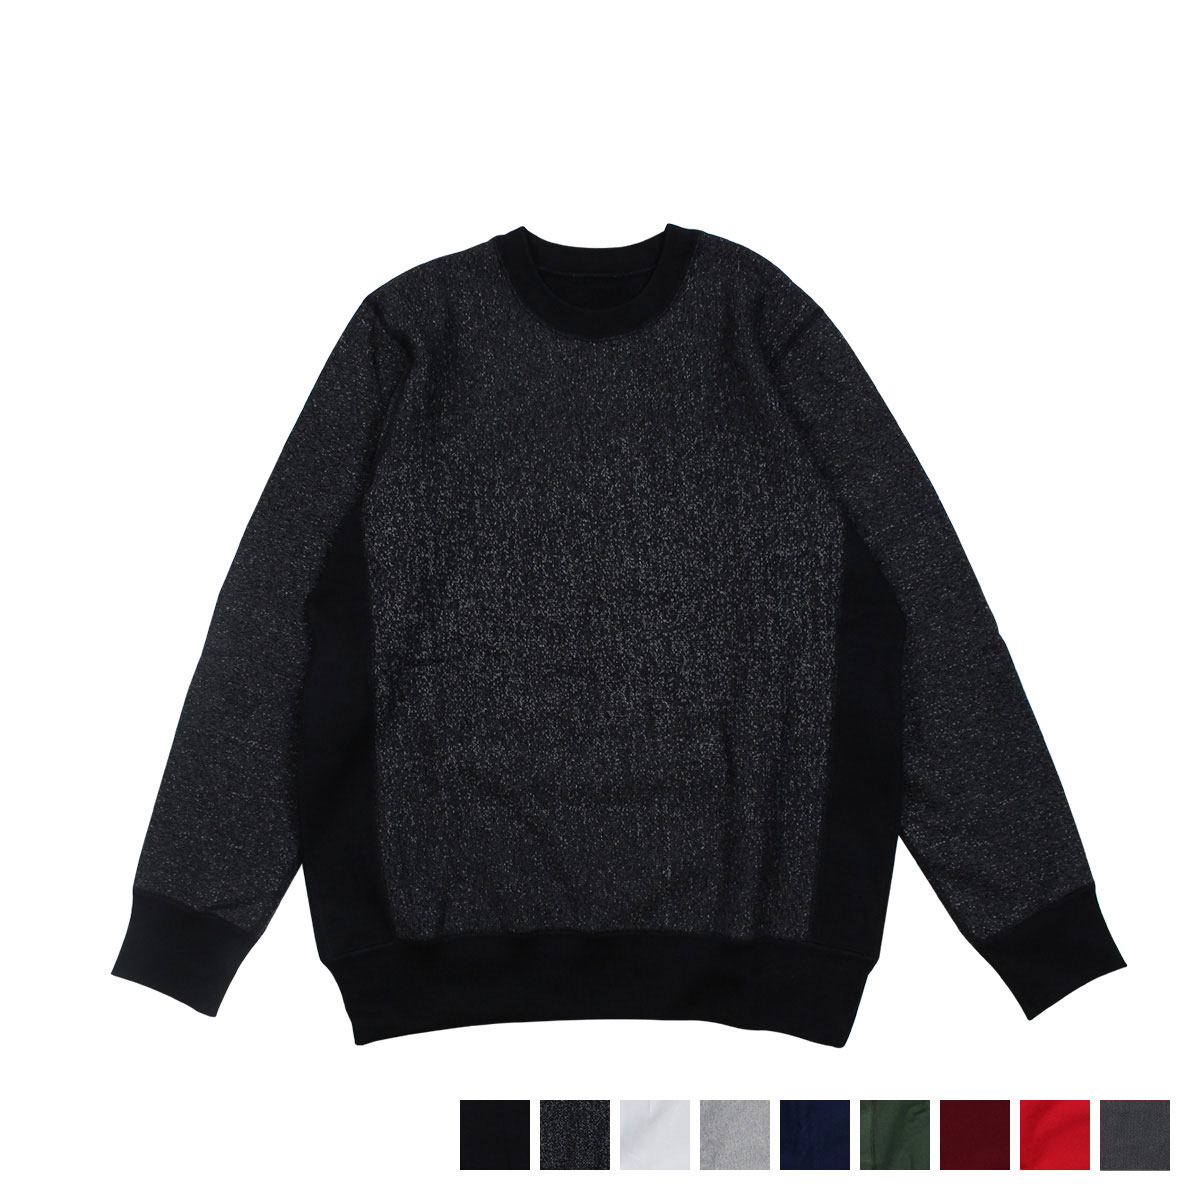 ALLSPORTS  A product made in CREWNECK SWEATSHIRT trainer sweat shirt ... 189f5d2a9c05